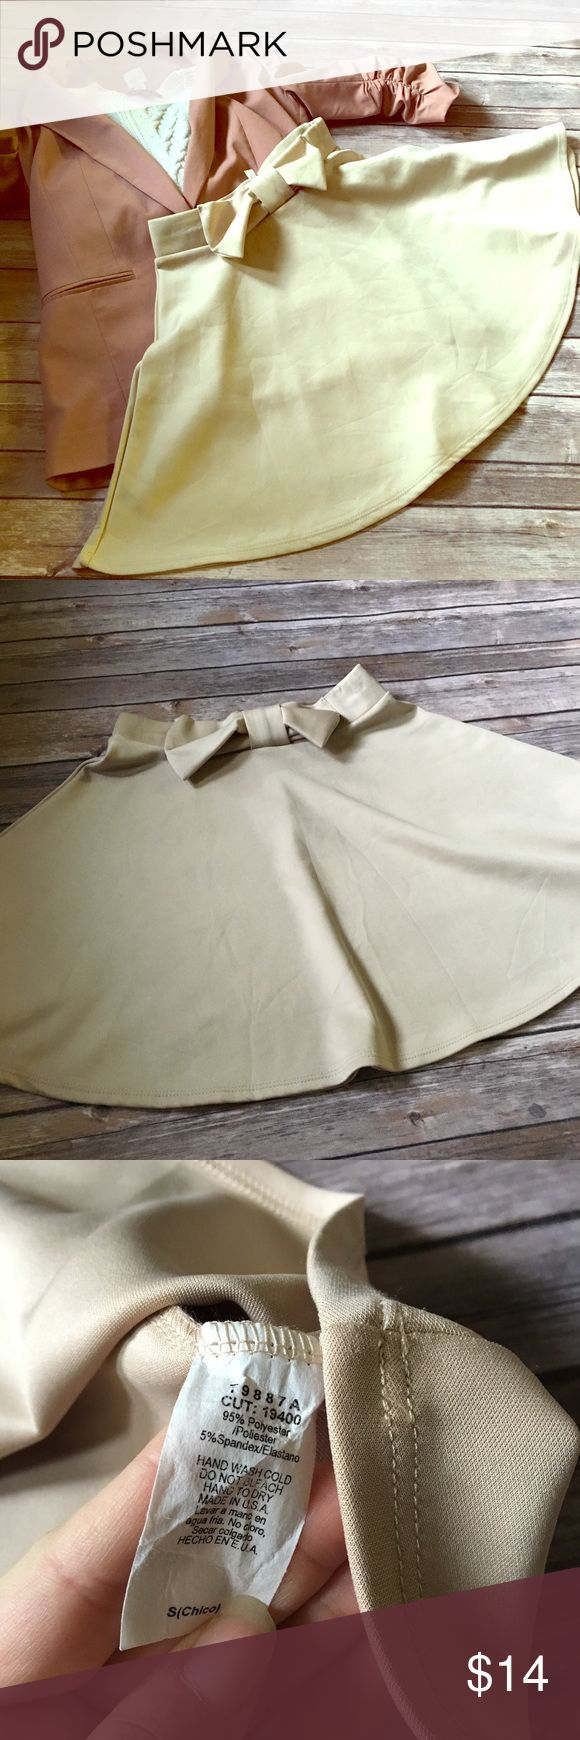 Chocolate Beige Bow Top Skater Skirt Super cute and fun mini skater skirt with bow on waistband. Not lined but not see through. Cream color goes with so many tops! Elastic waistband, and material does have stretch. Waist while not stretched and length measurements pictured. EUC no flaws. chocolate Skirts Circle & Skater